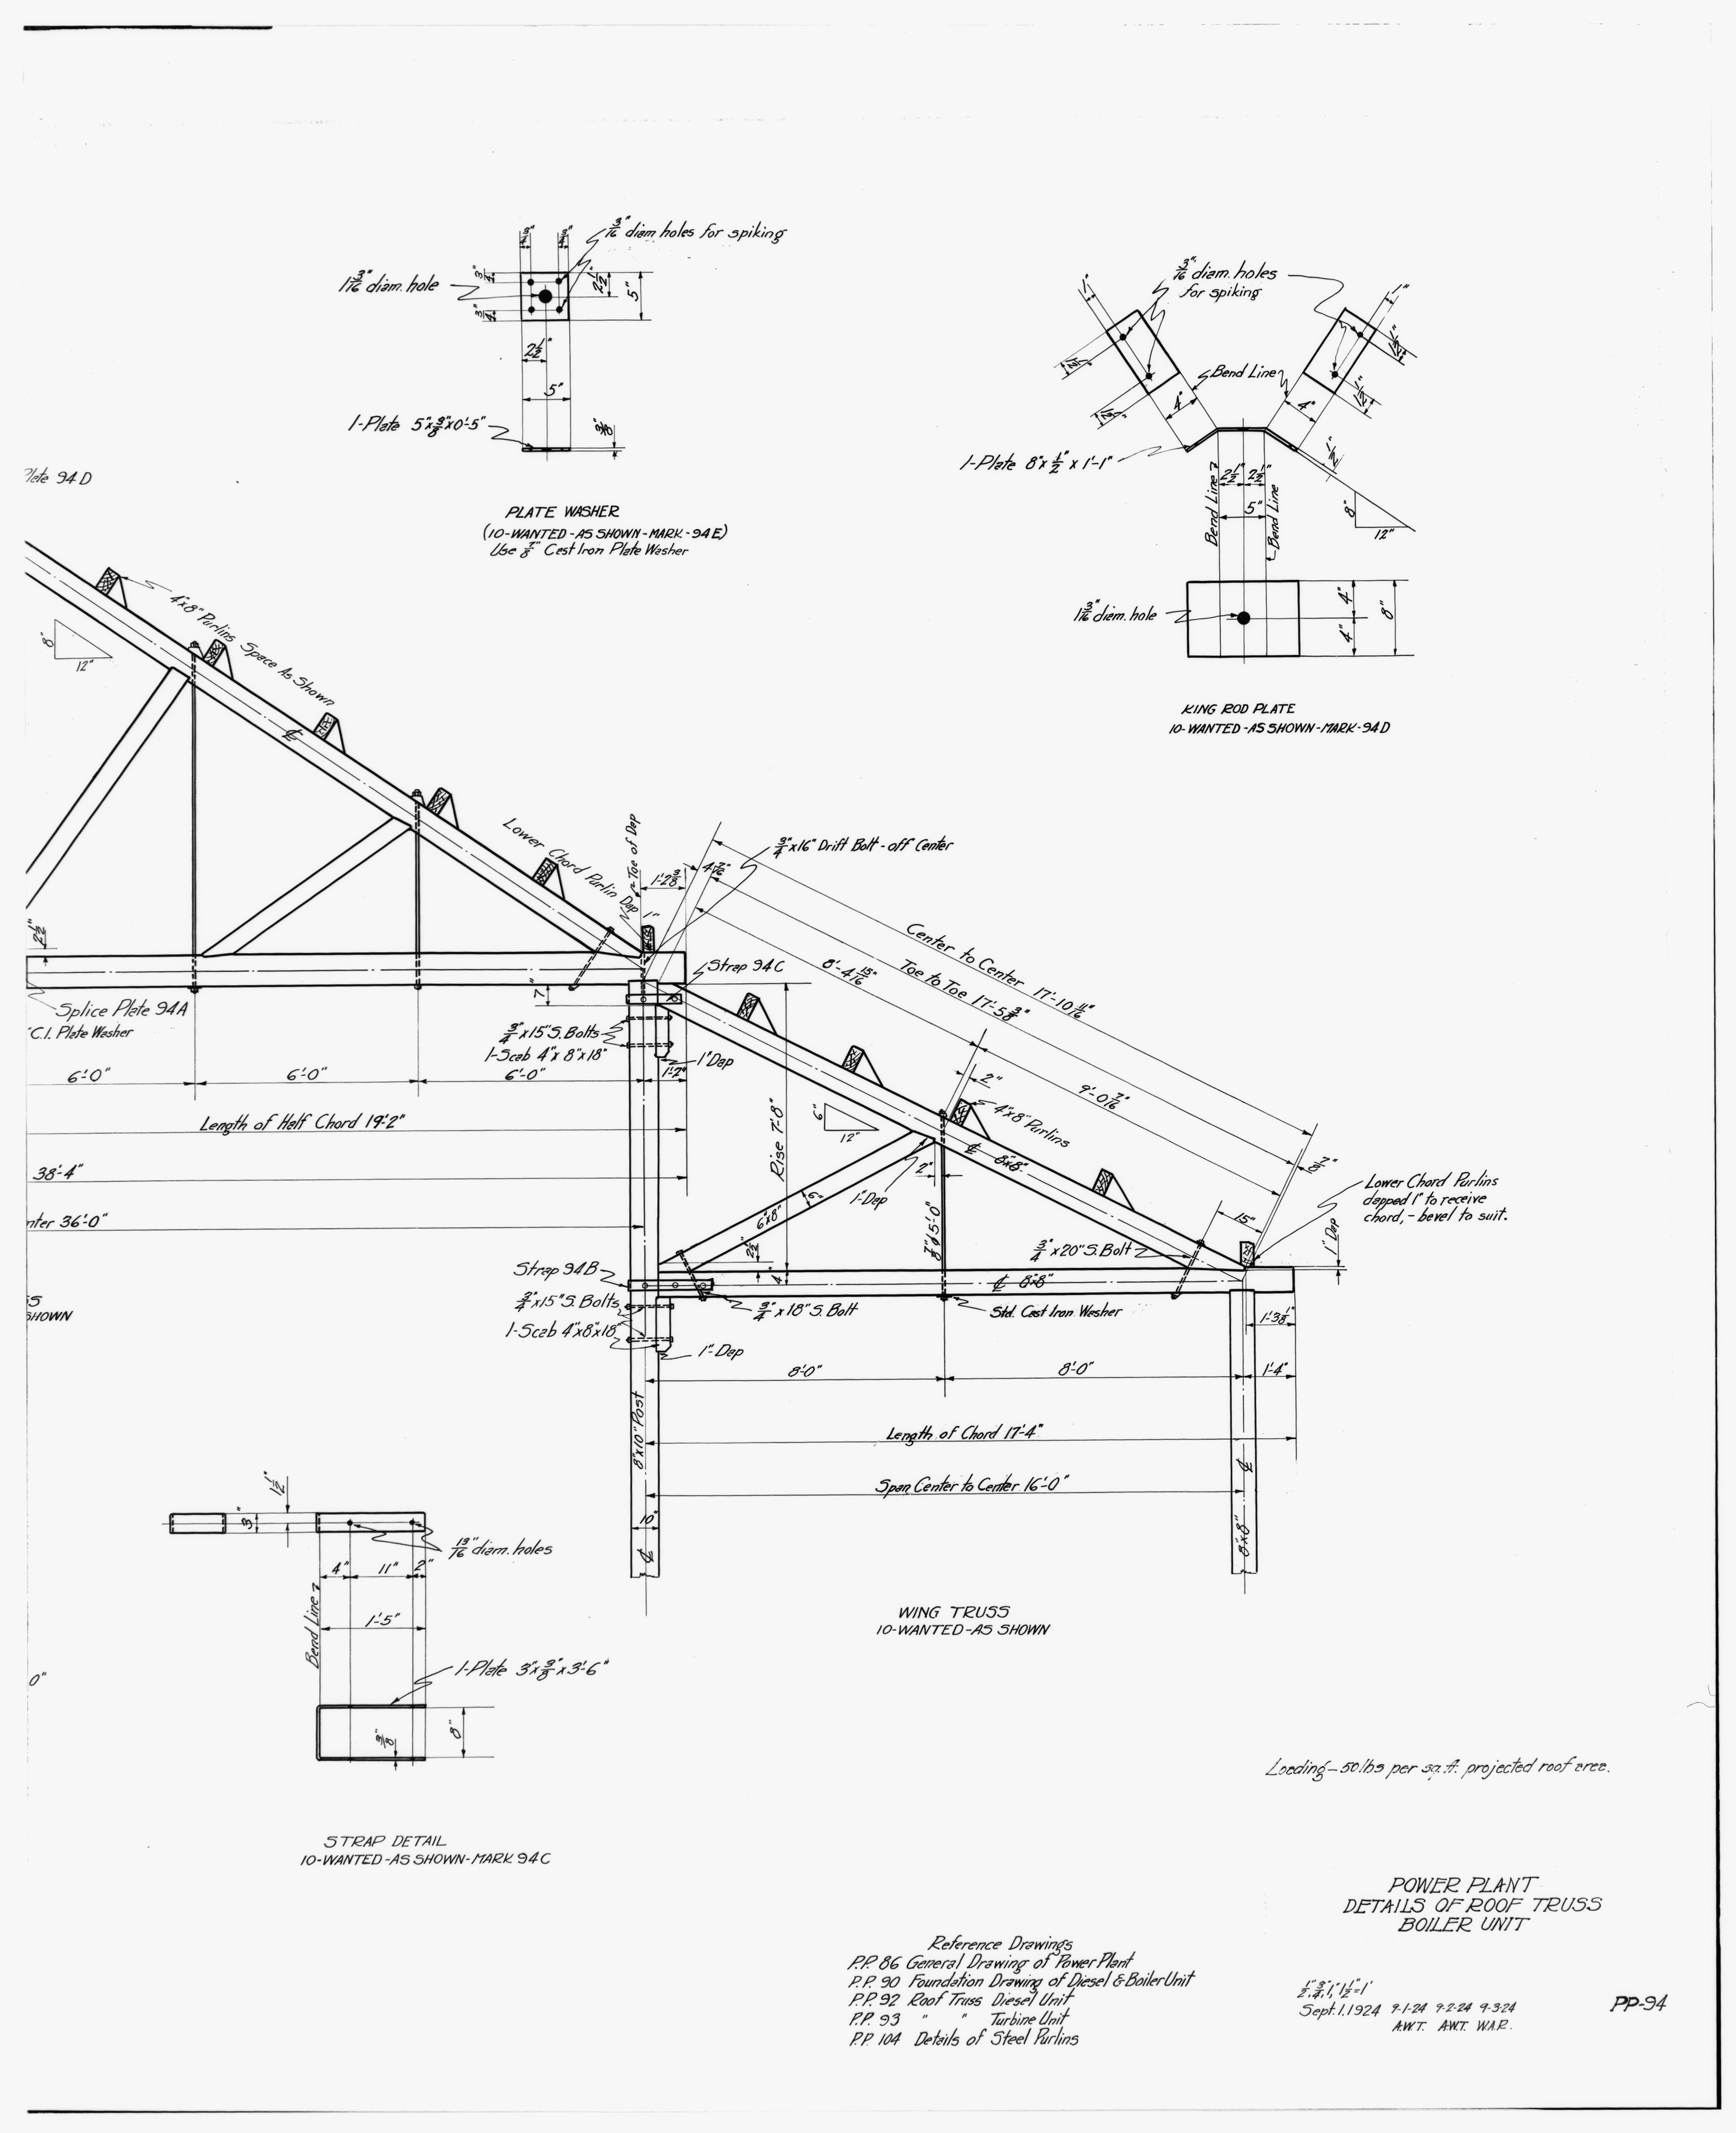 3949x4851 File30. Photocopy Of Drawing Of Power Plant, Details Of Roof